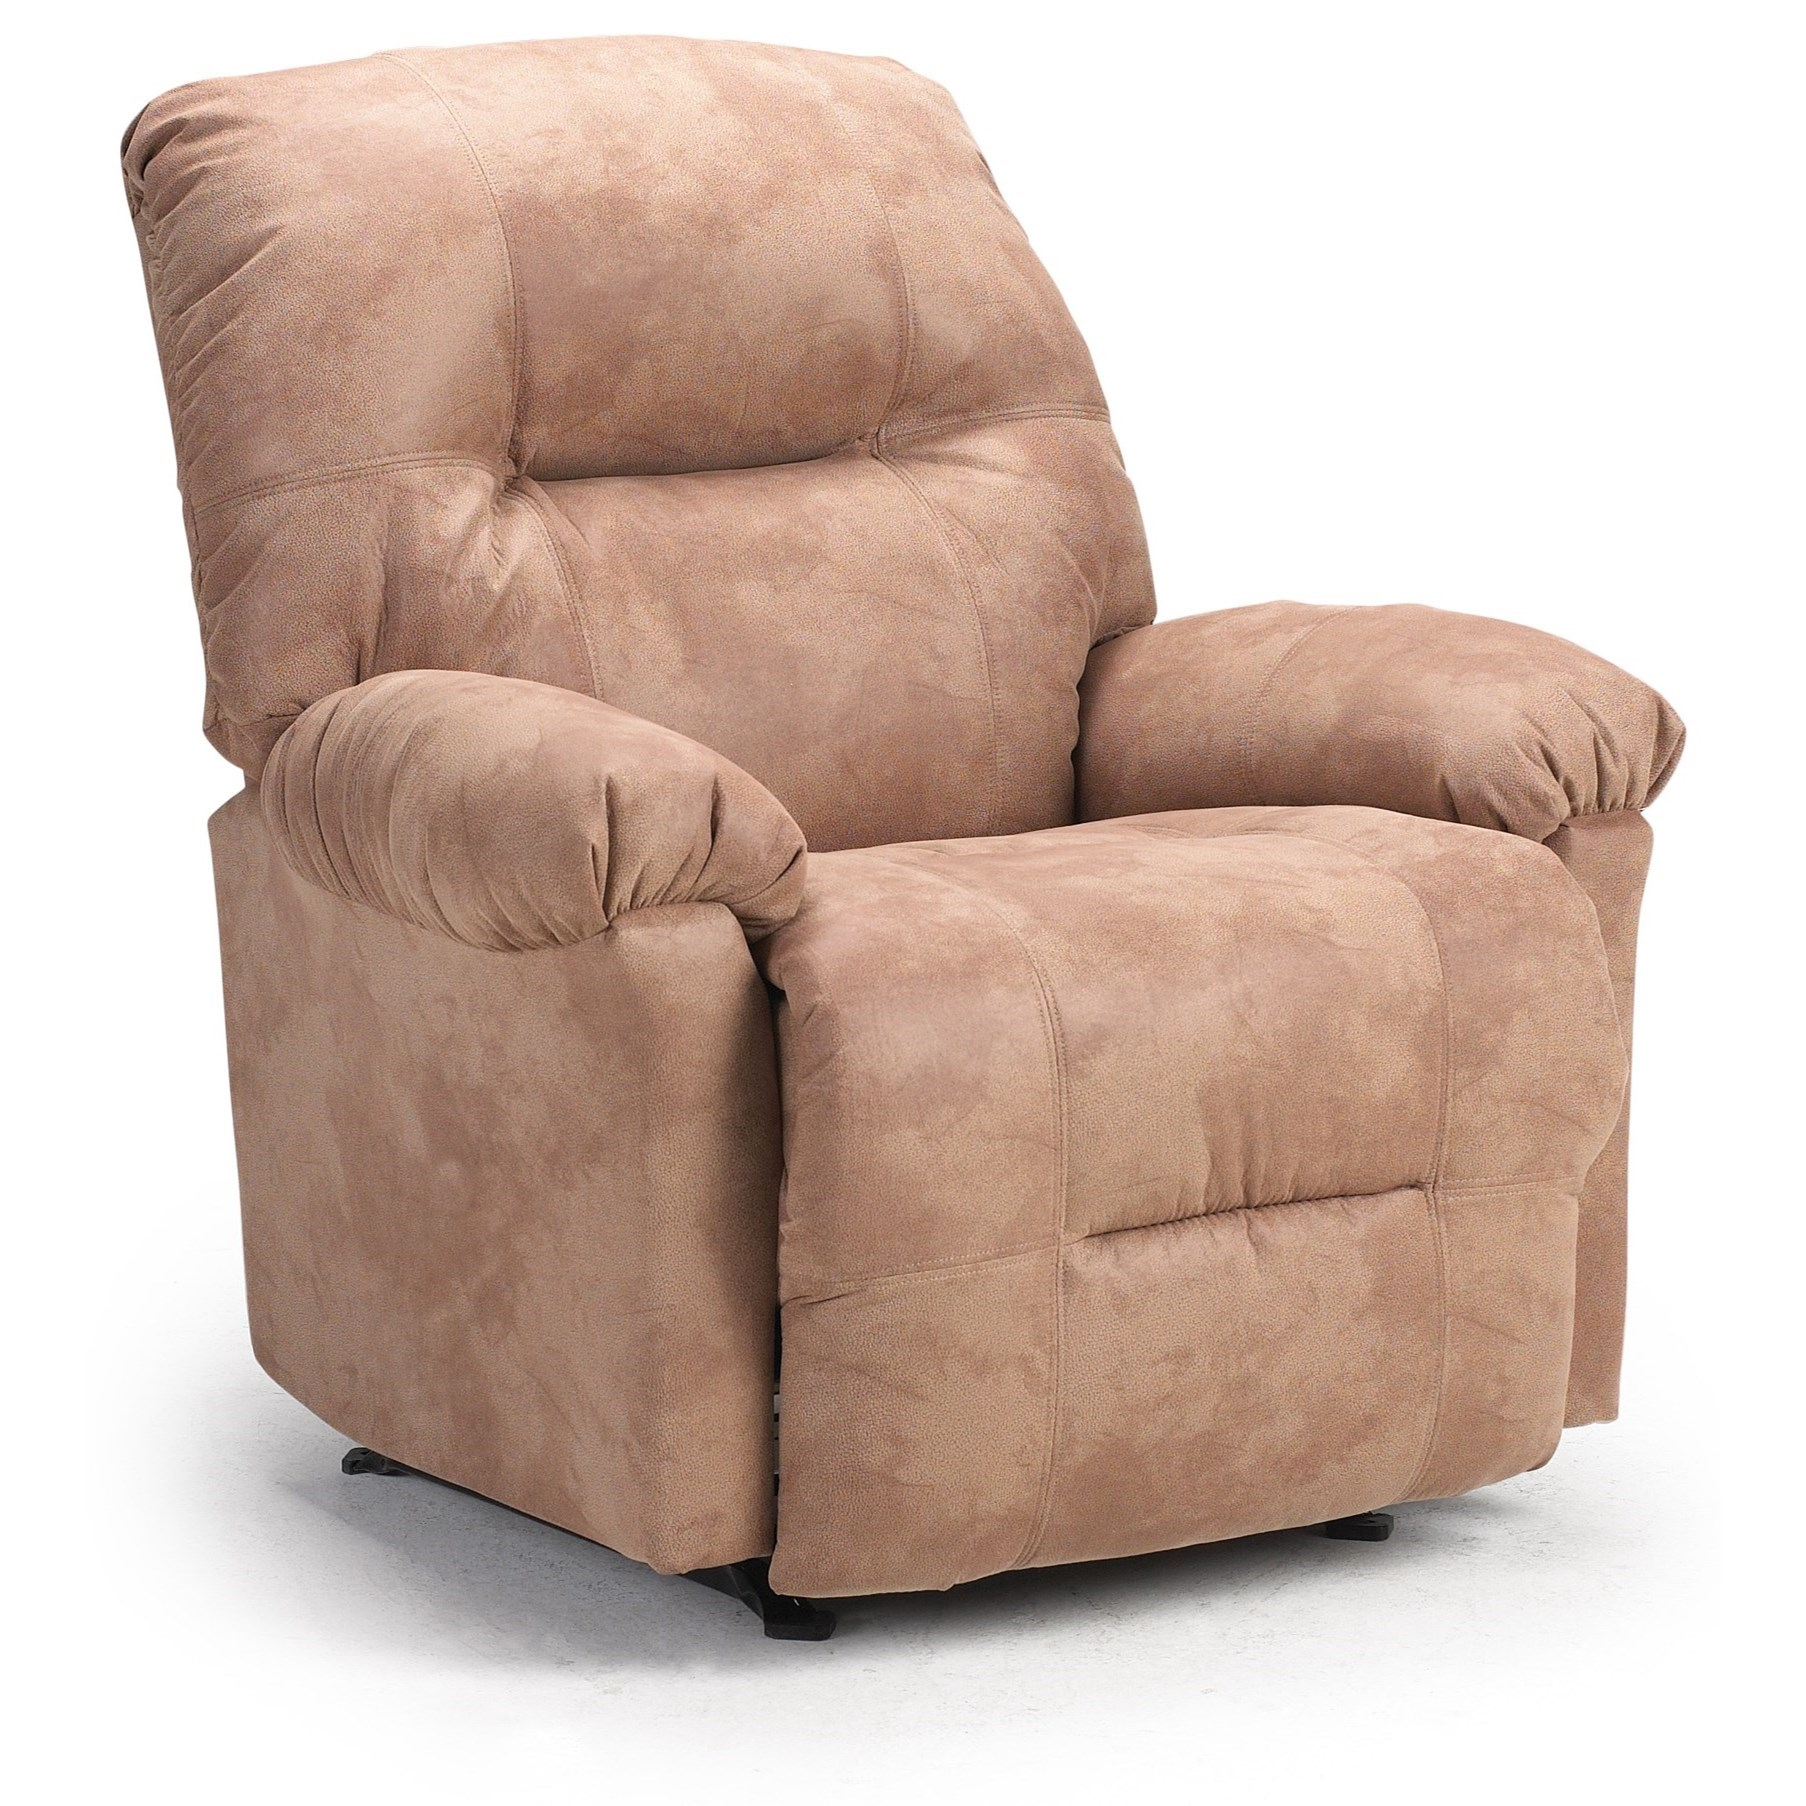 Petite Recliners Wynette Power Wallhugger Recliner by Best Home Furnishings at Baer's Furniture